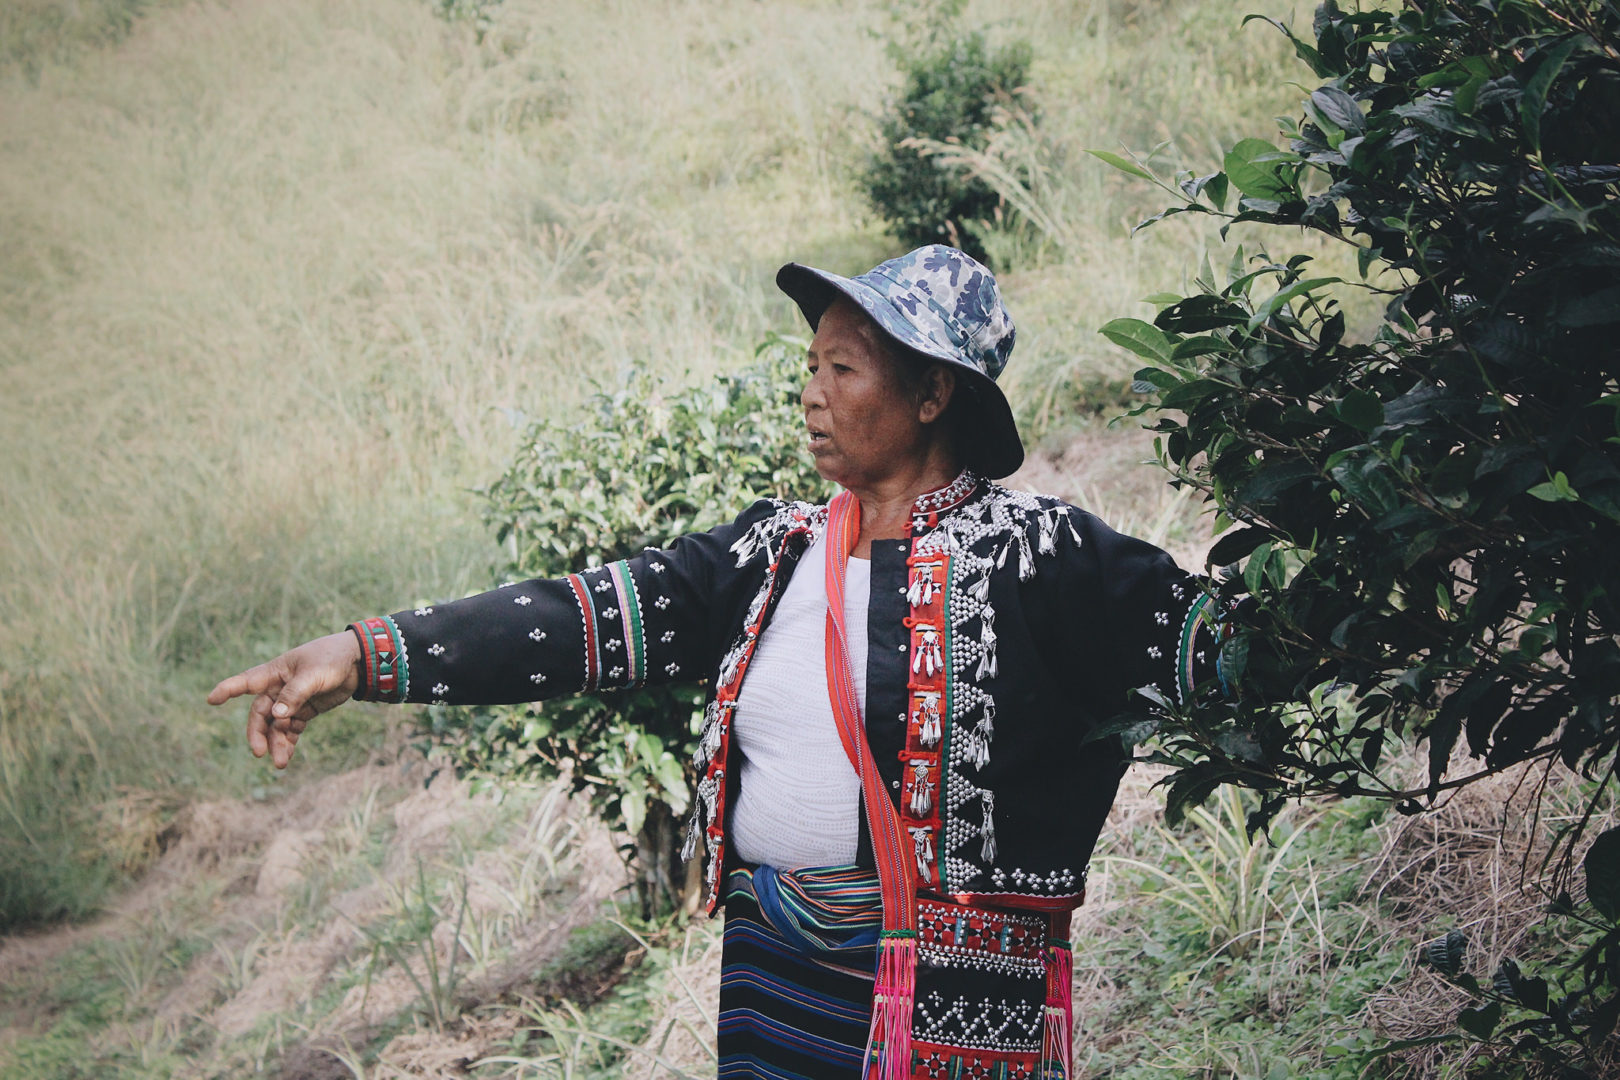 From Myanmar to her own backyard, Na Kuh creates change